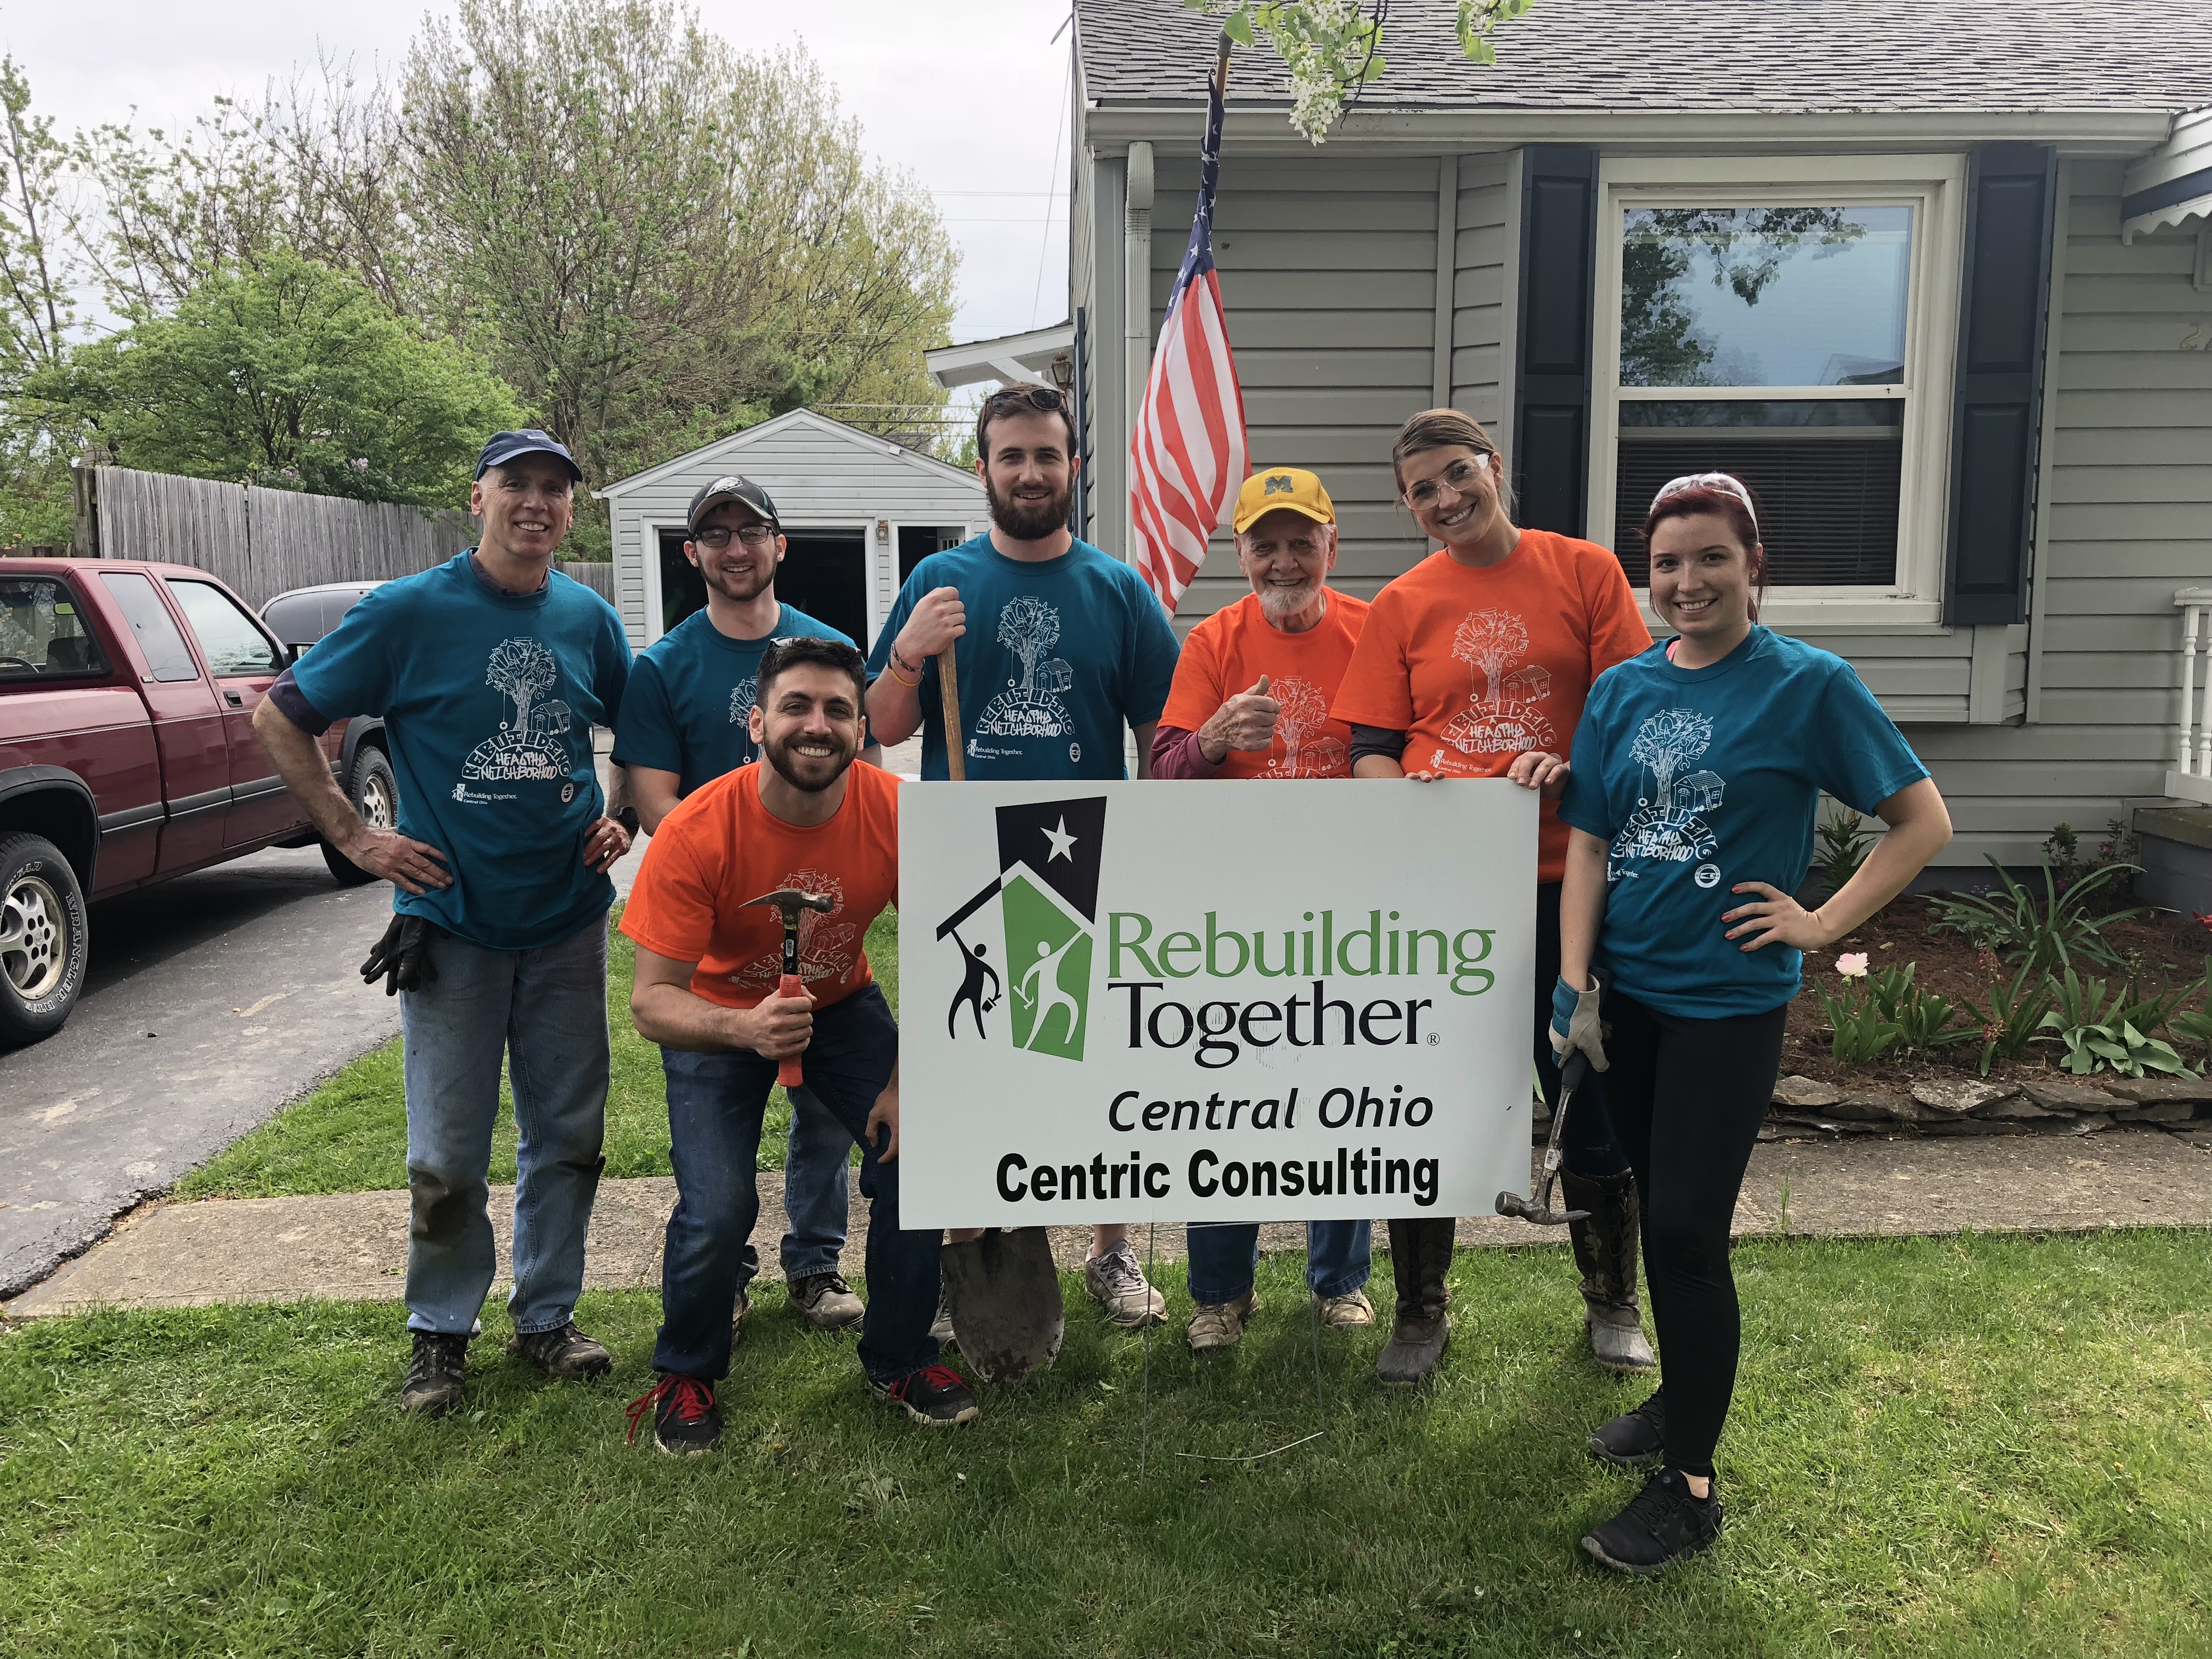 Rebuilding Together & Centric Consulting Team